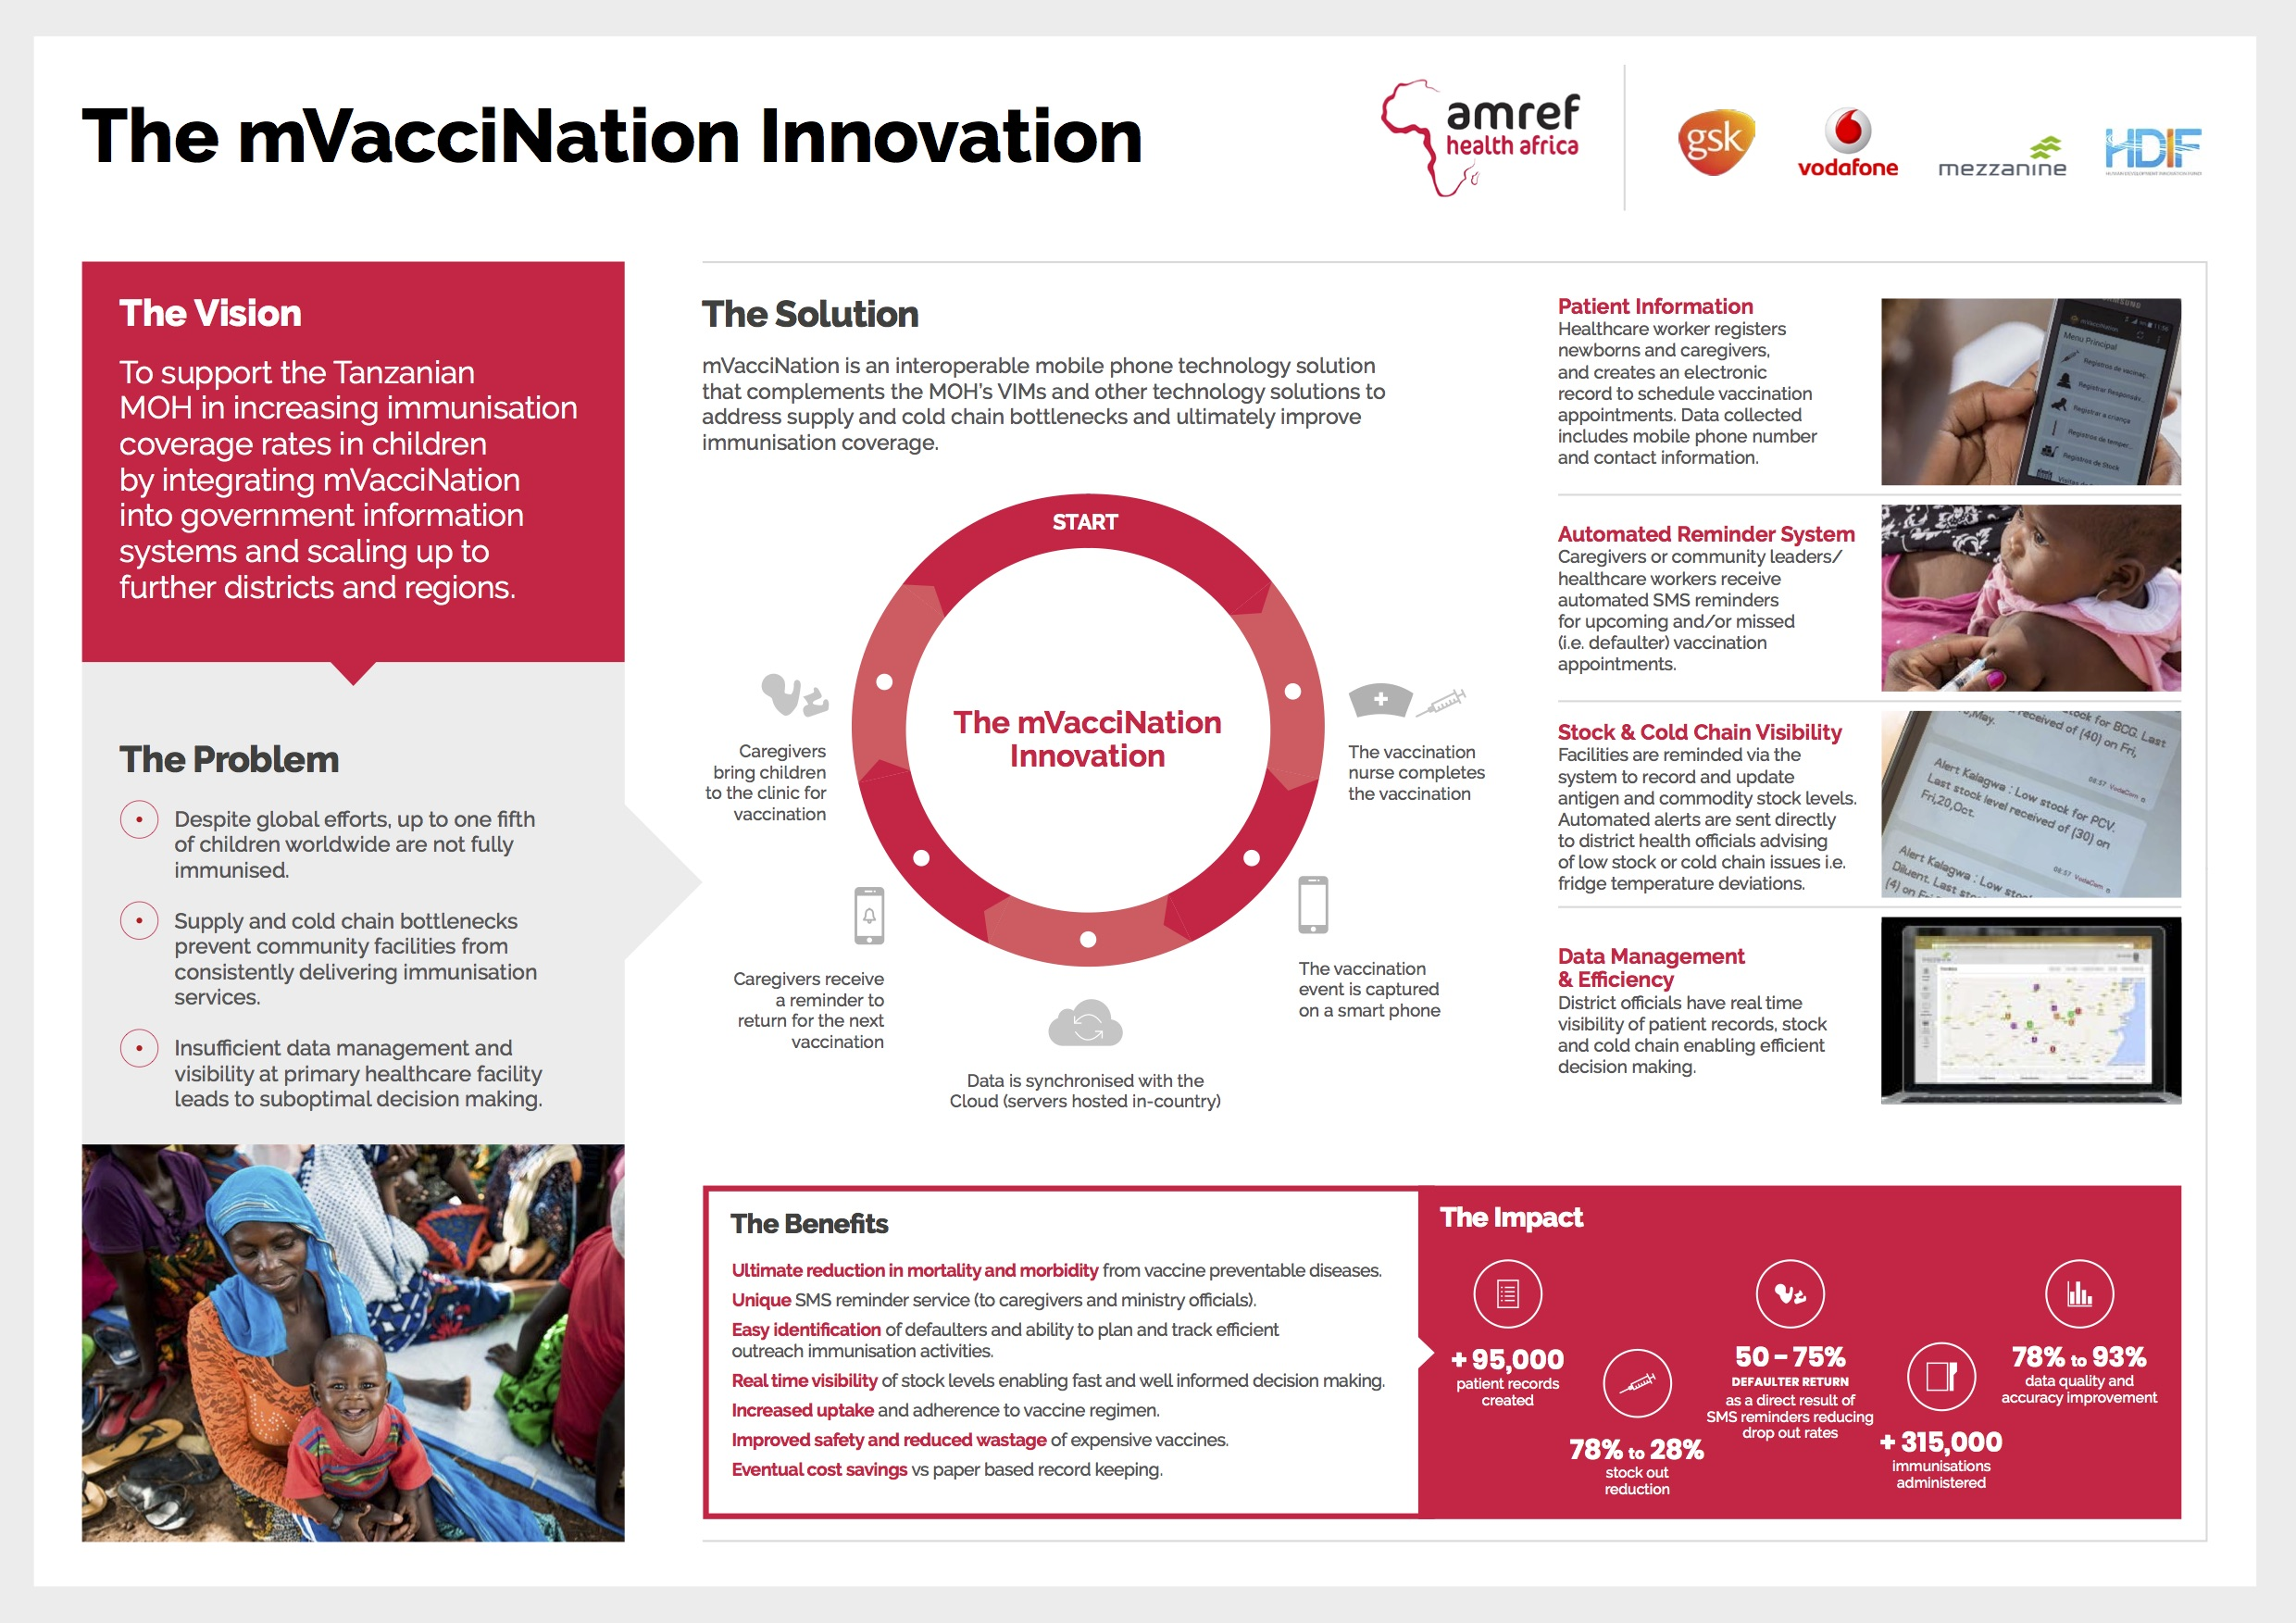 Amref_mVacciNation poster_Final.jpg